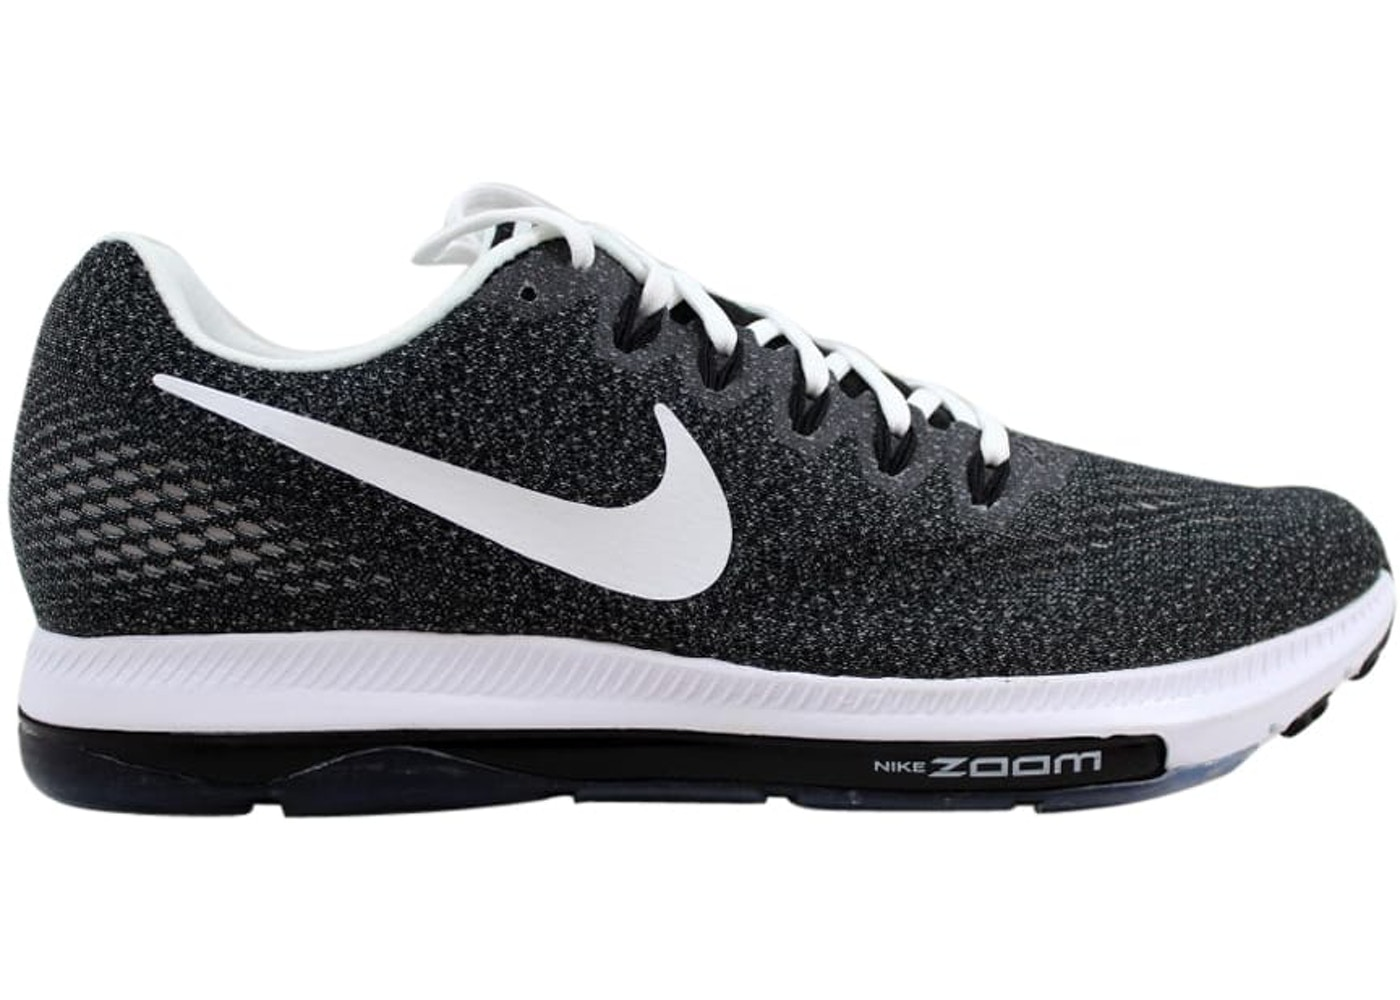 4f5c1bfb13e97 Nike Zoom All Out Low H Black - 889123-001